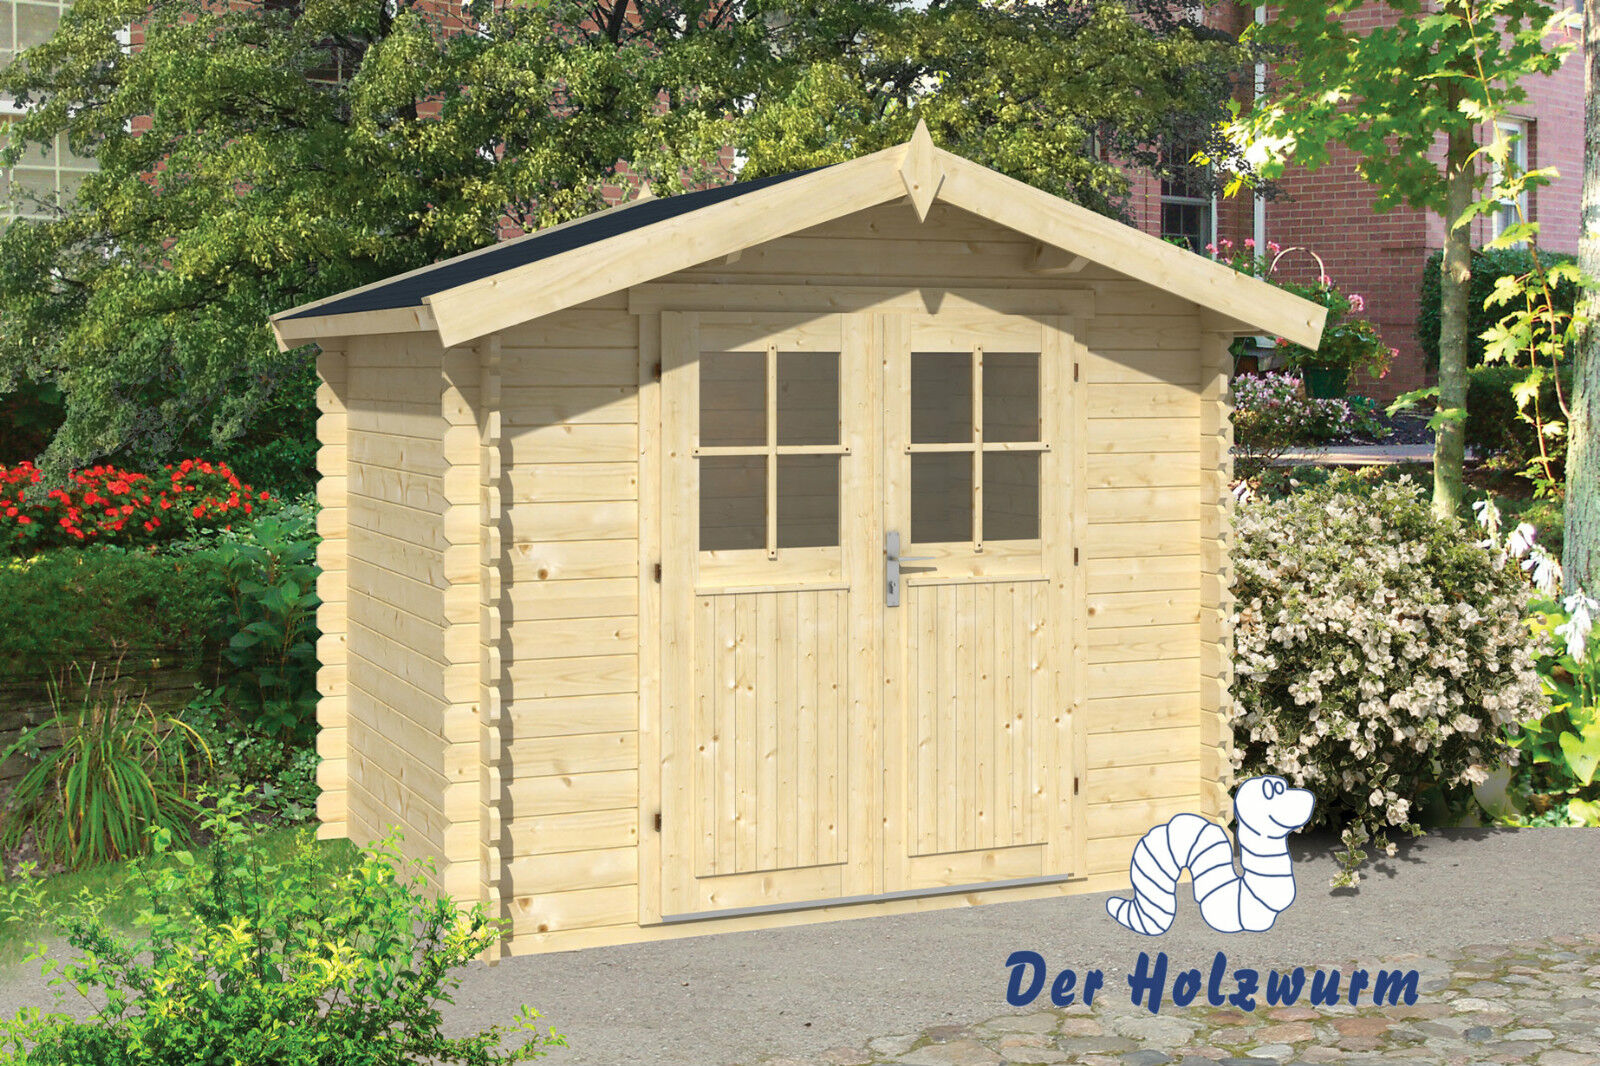 gartenhaus robert blockhaus 260x200 cm ger tehaus holzhaus 28 mm holz schuppen ebay. Black Bedroom Furniture Sets. Home Design Ideas